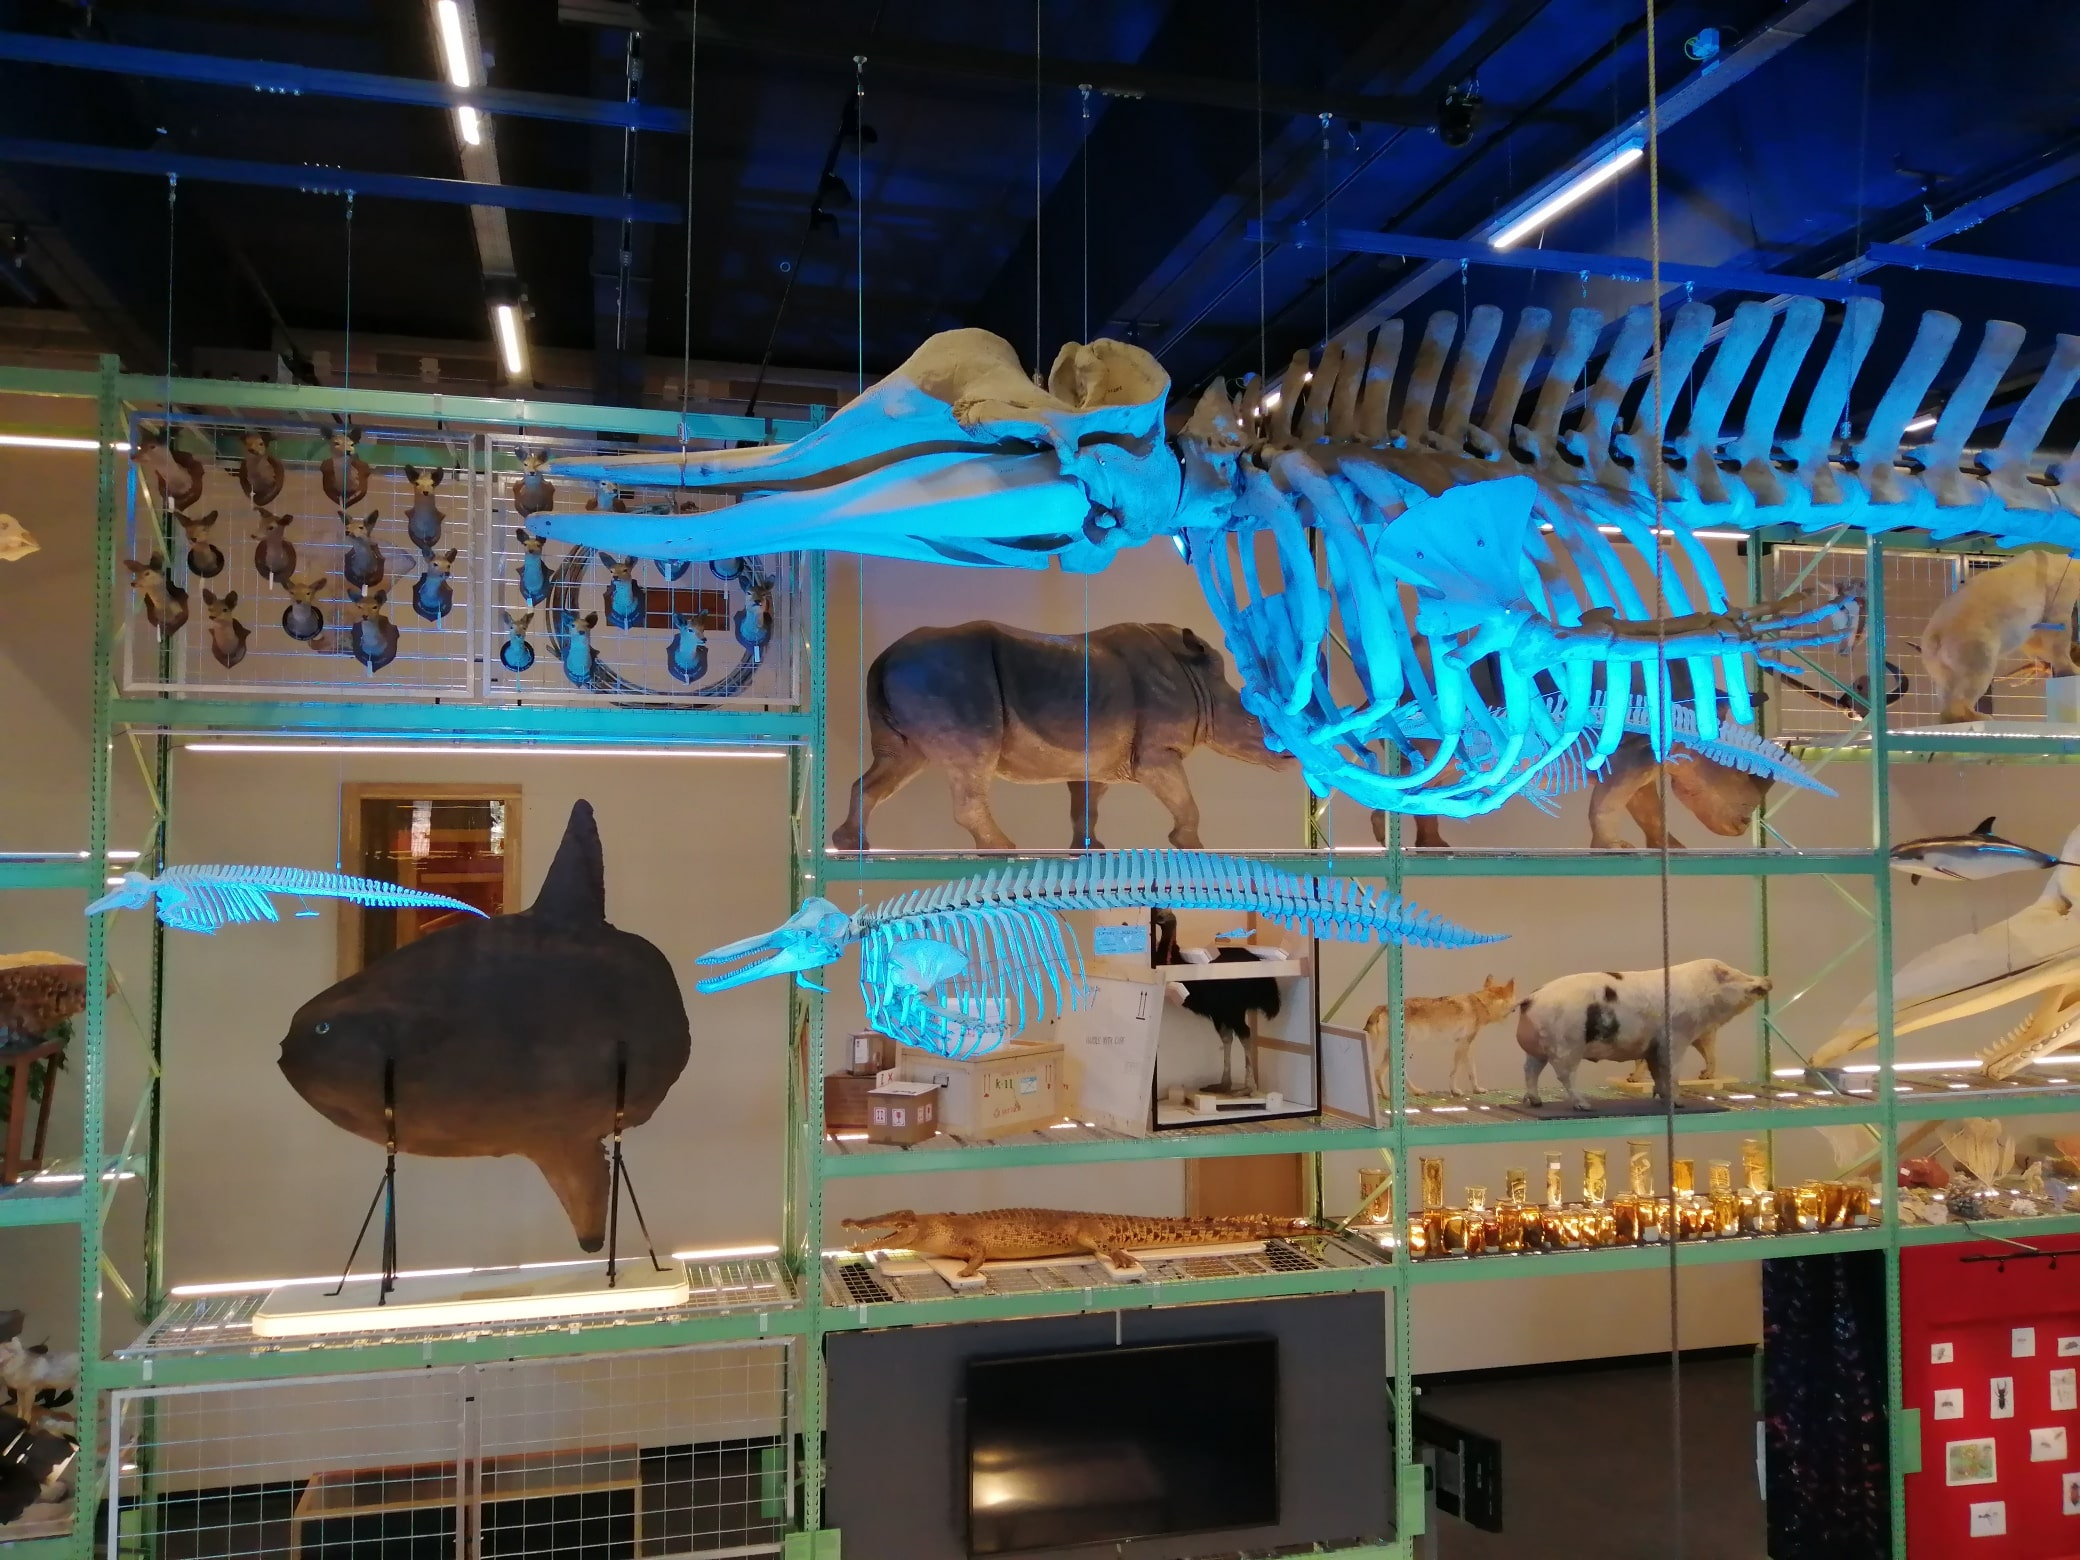 Skeletten | oplevering bruinvis, dolfijn en butskop skelet  | Live Science - Naturalis Biodiversity Center